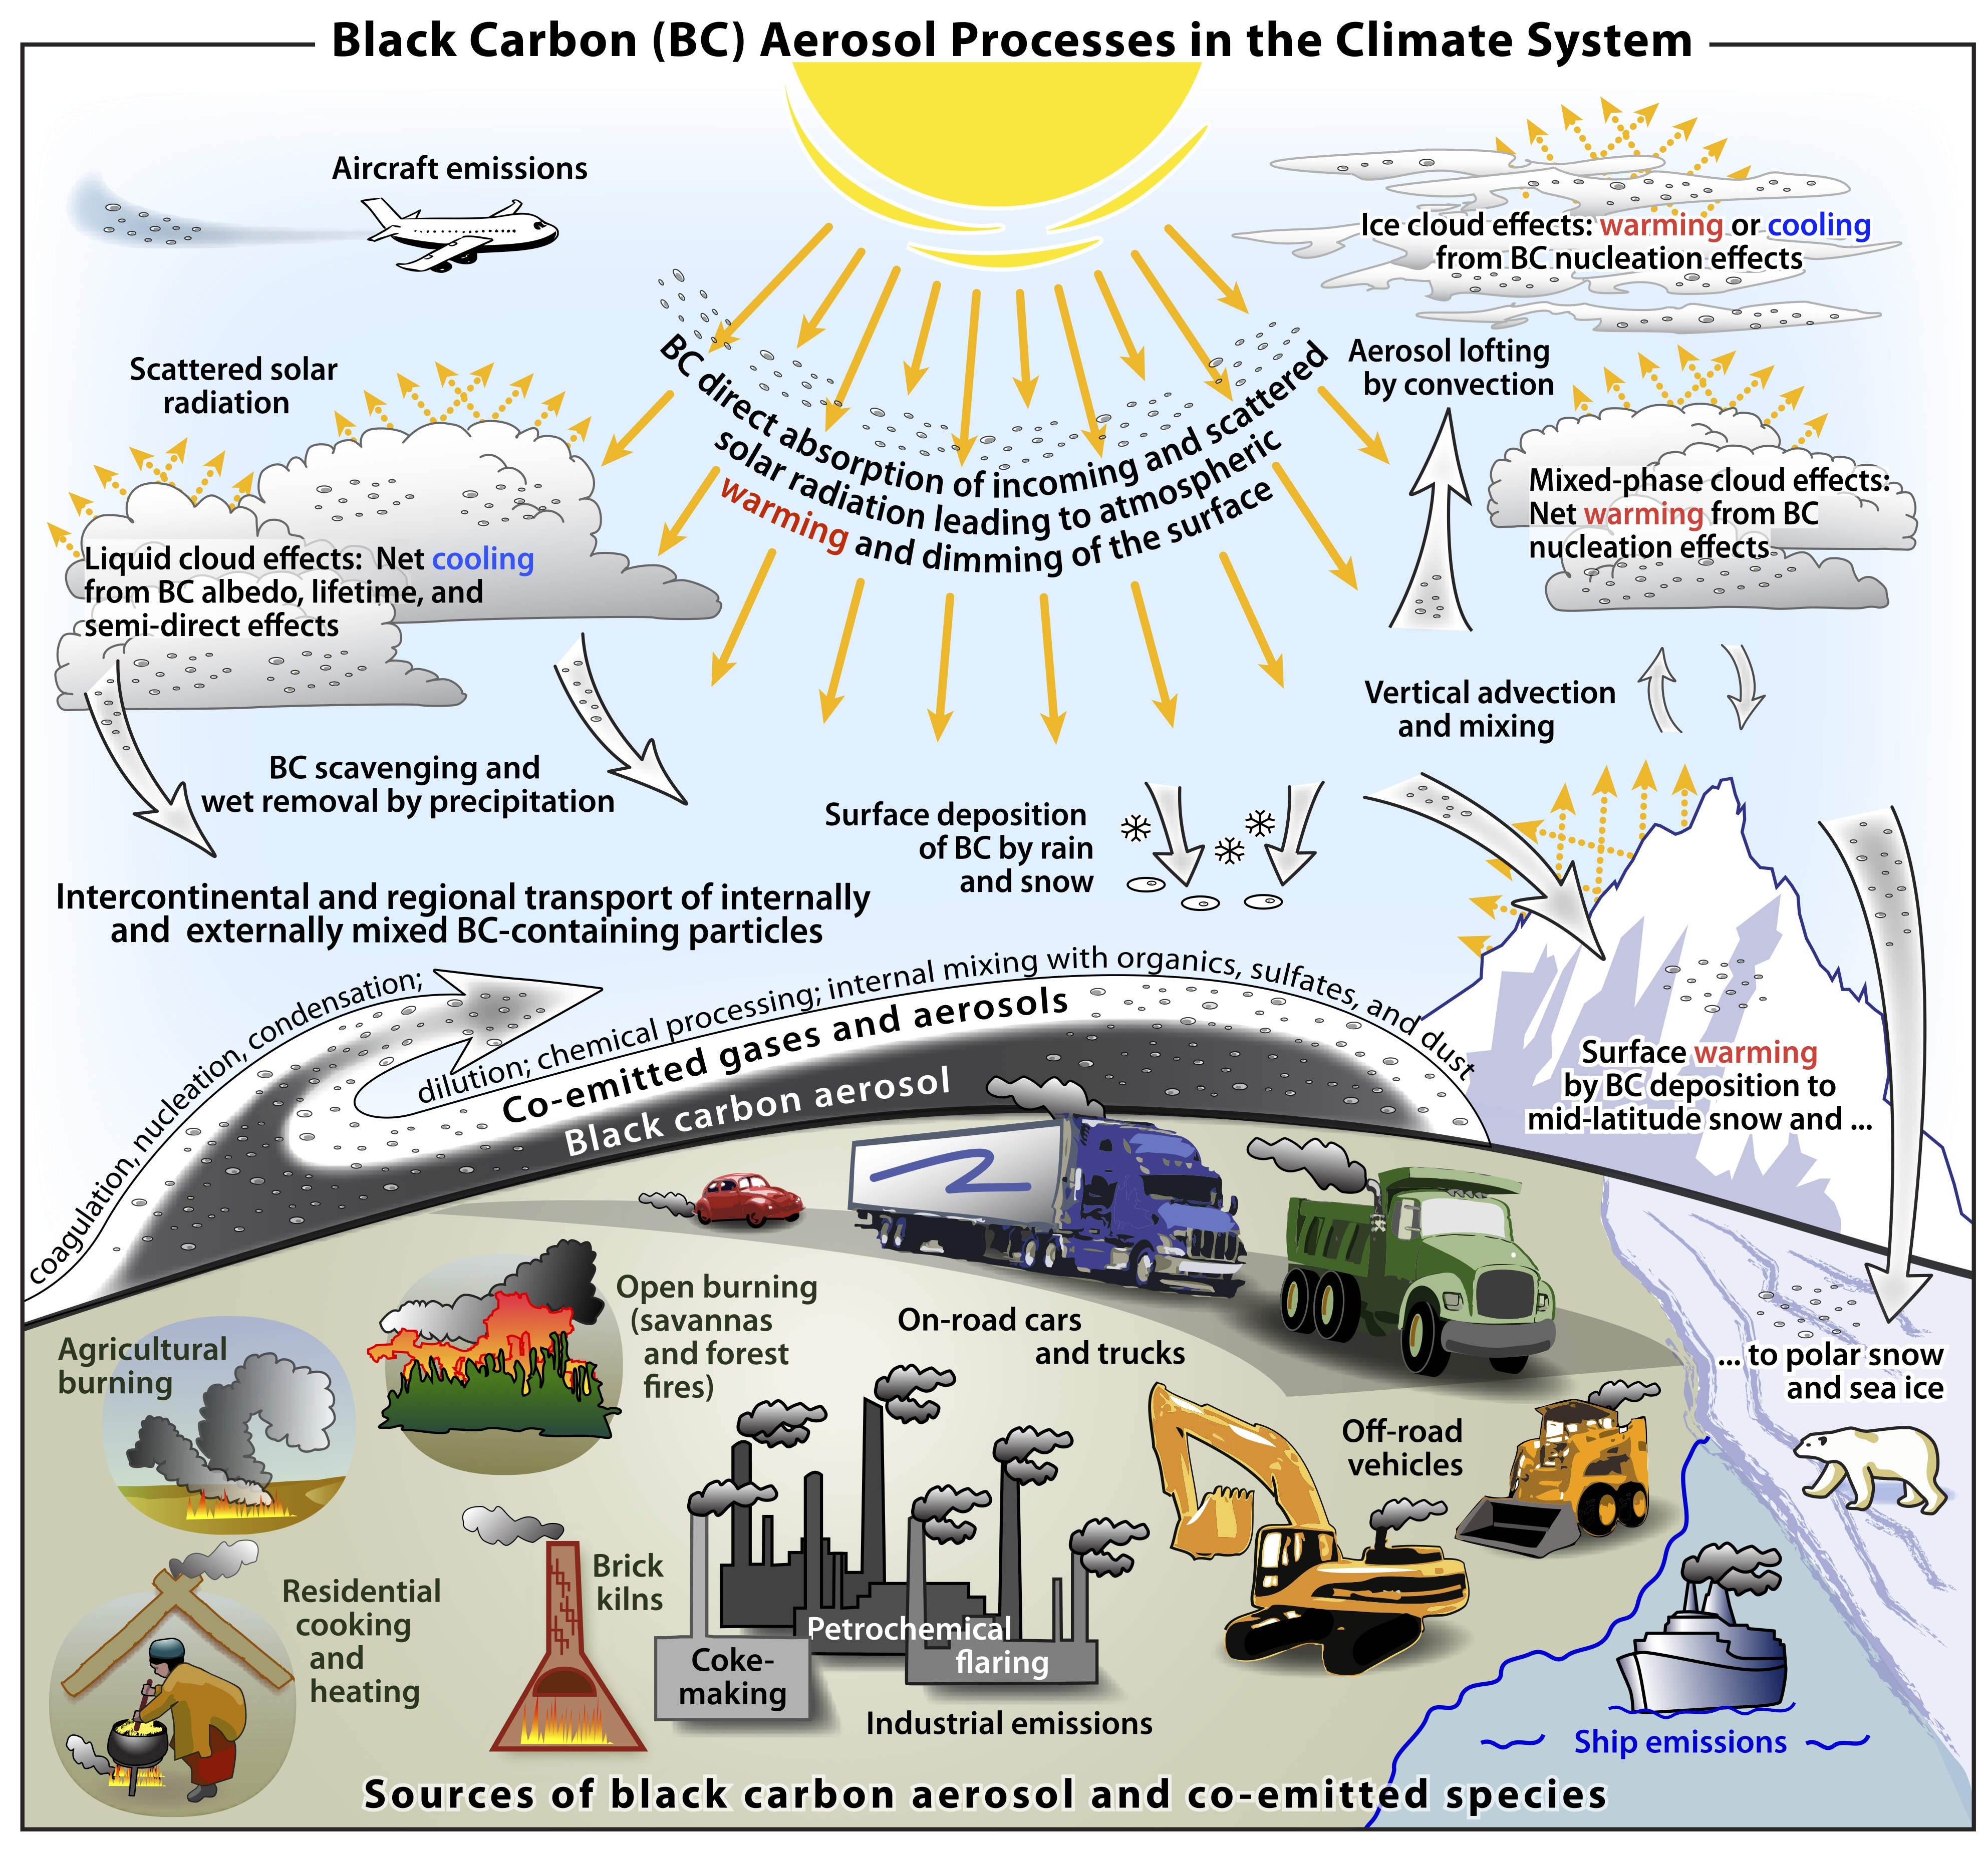 Black Carbon Larger Cause Of Climate Change Than Previously Assessed